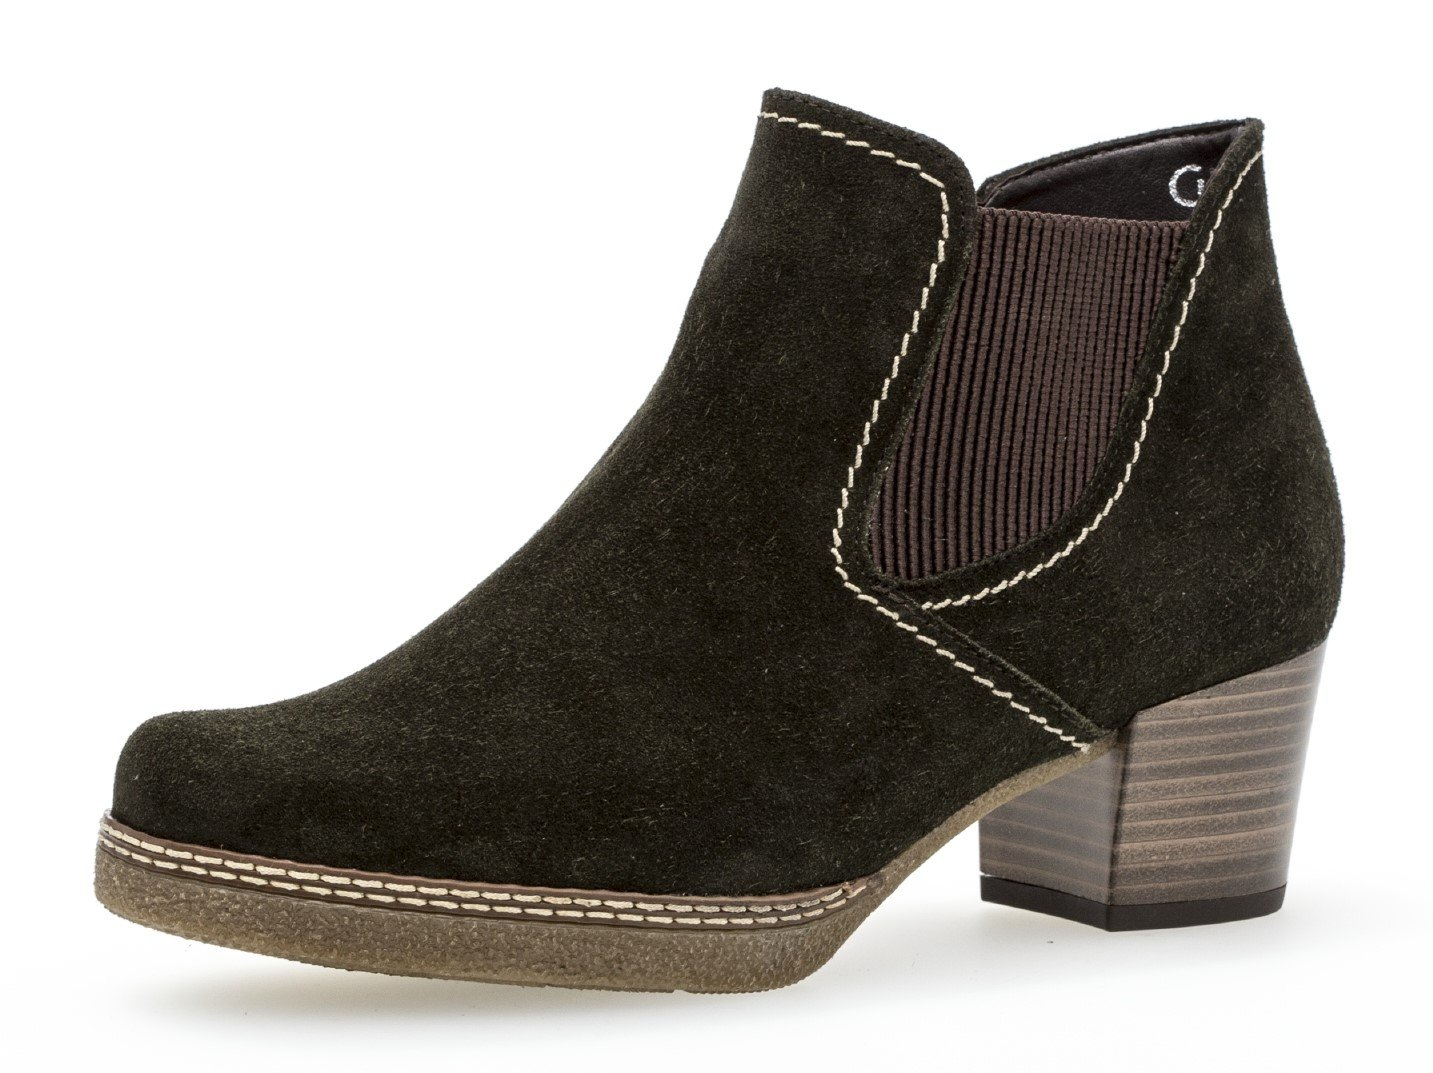 Gabor 96.661 Ankle Boot Lilia 96.661 Ankle Bottle(s.n/A.ma Bottle(s.n/A.ma/Mi)/Mi) 7e74745 - tbfe.space